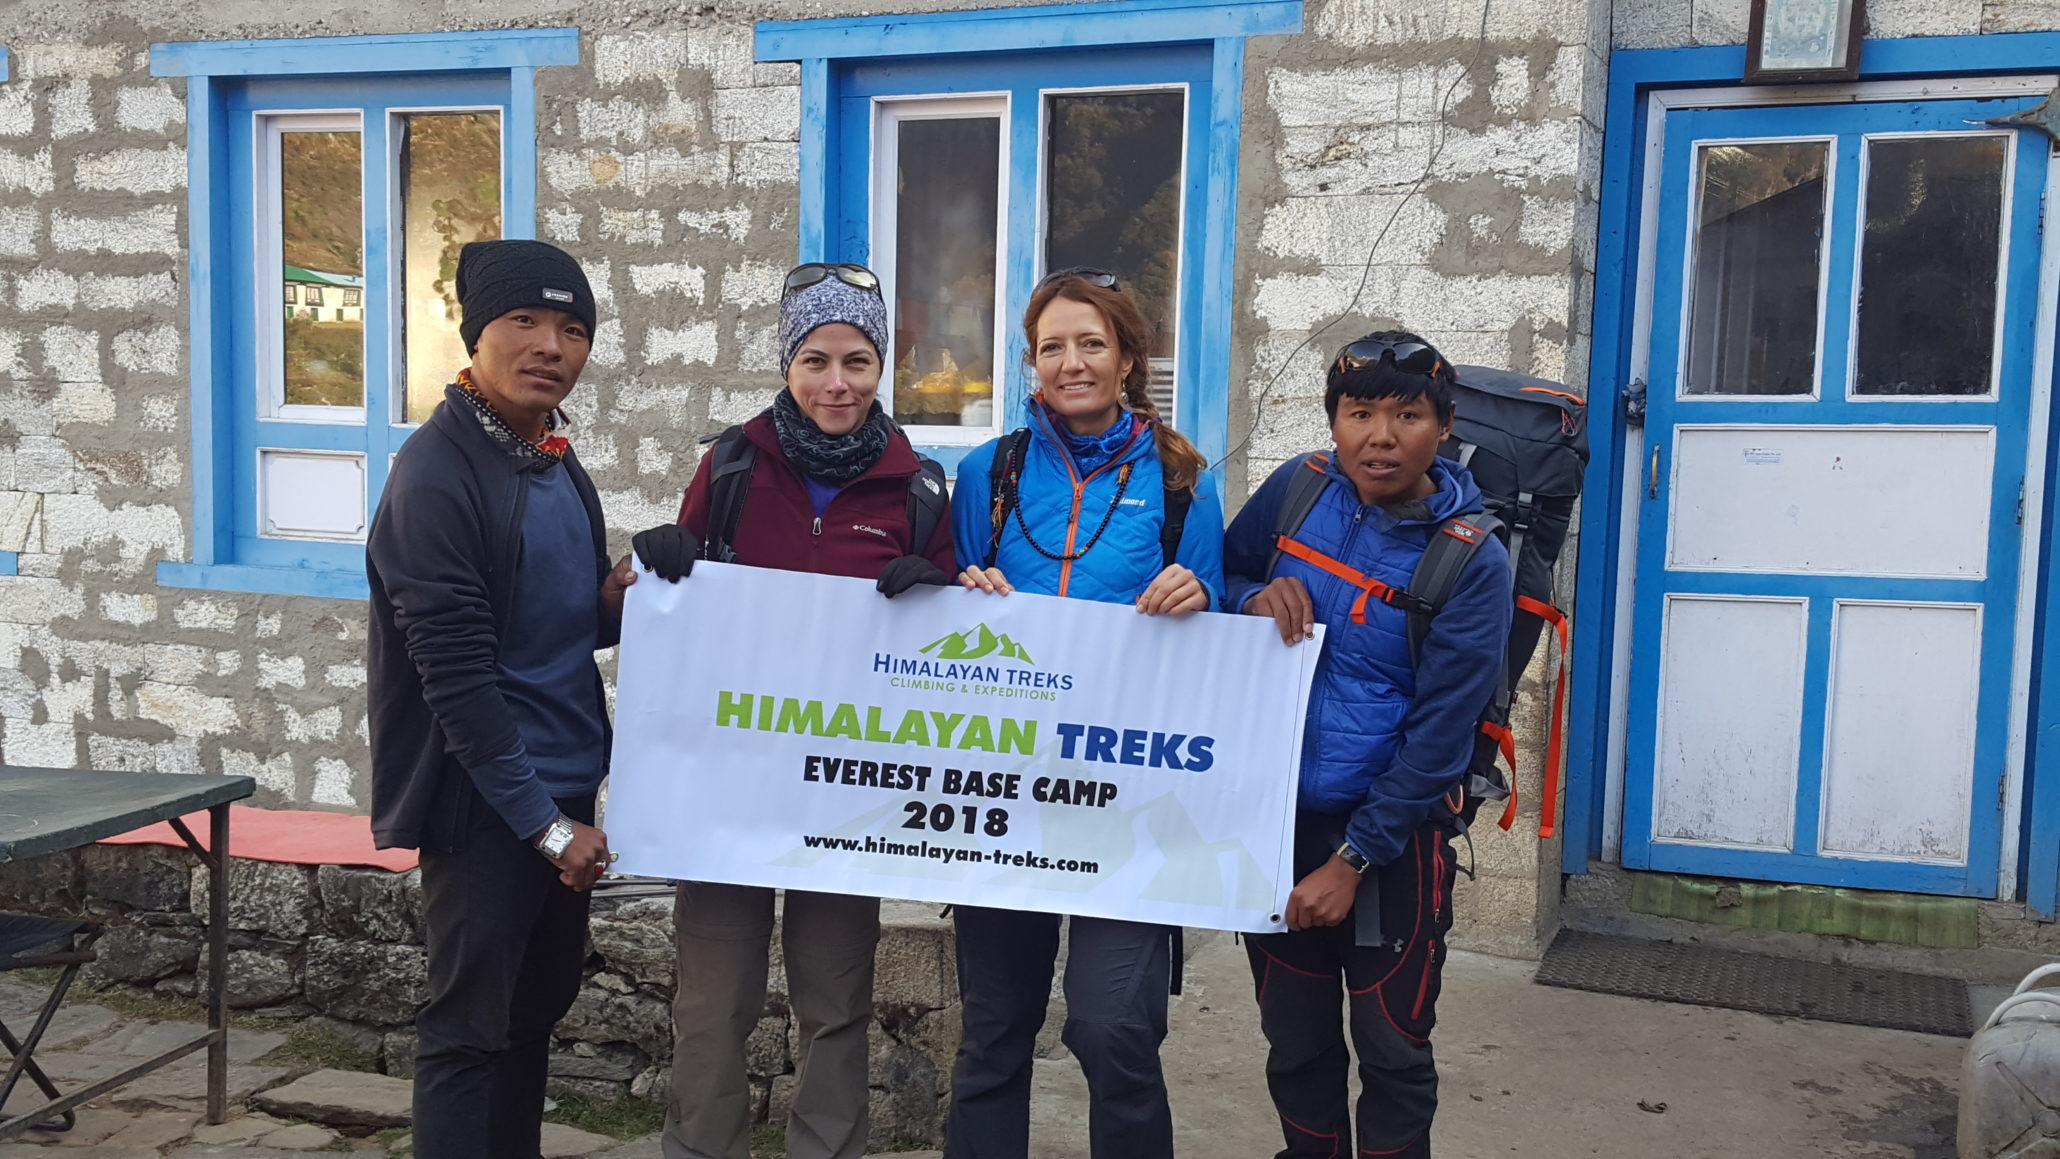 a signage with HIMALAYAN TREKS EVEREST BASE CAMP held by 4 trekkers